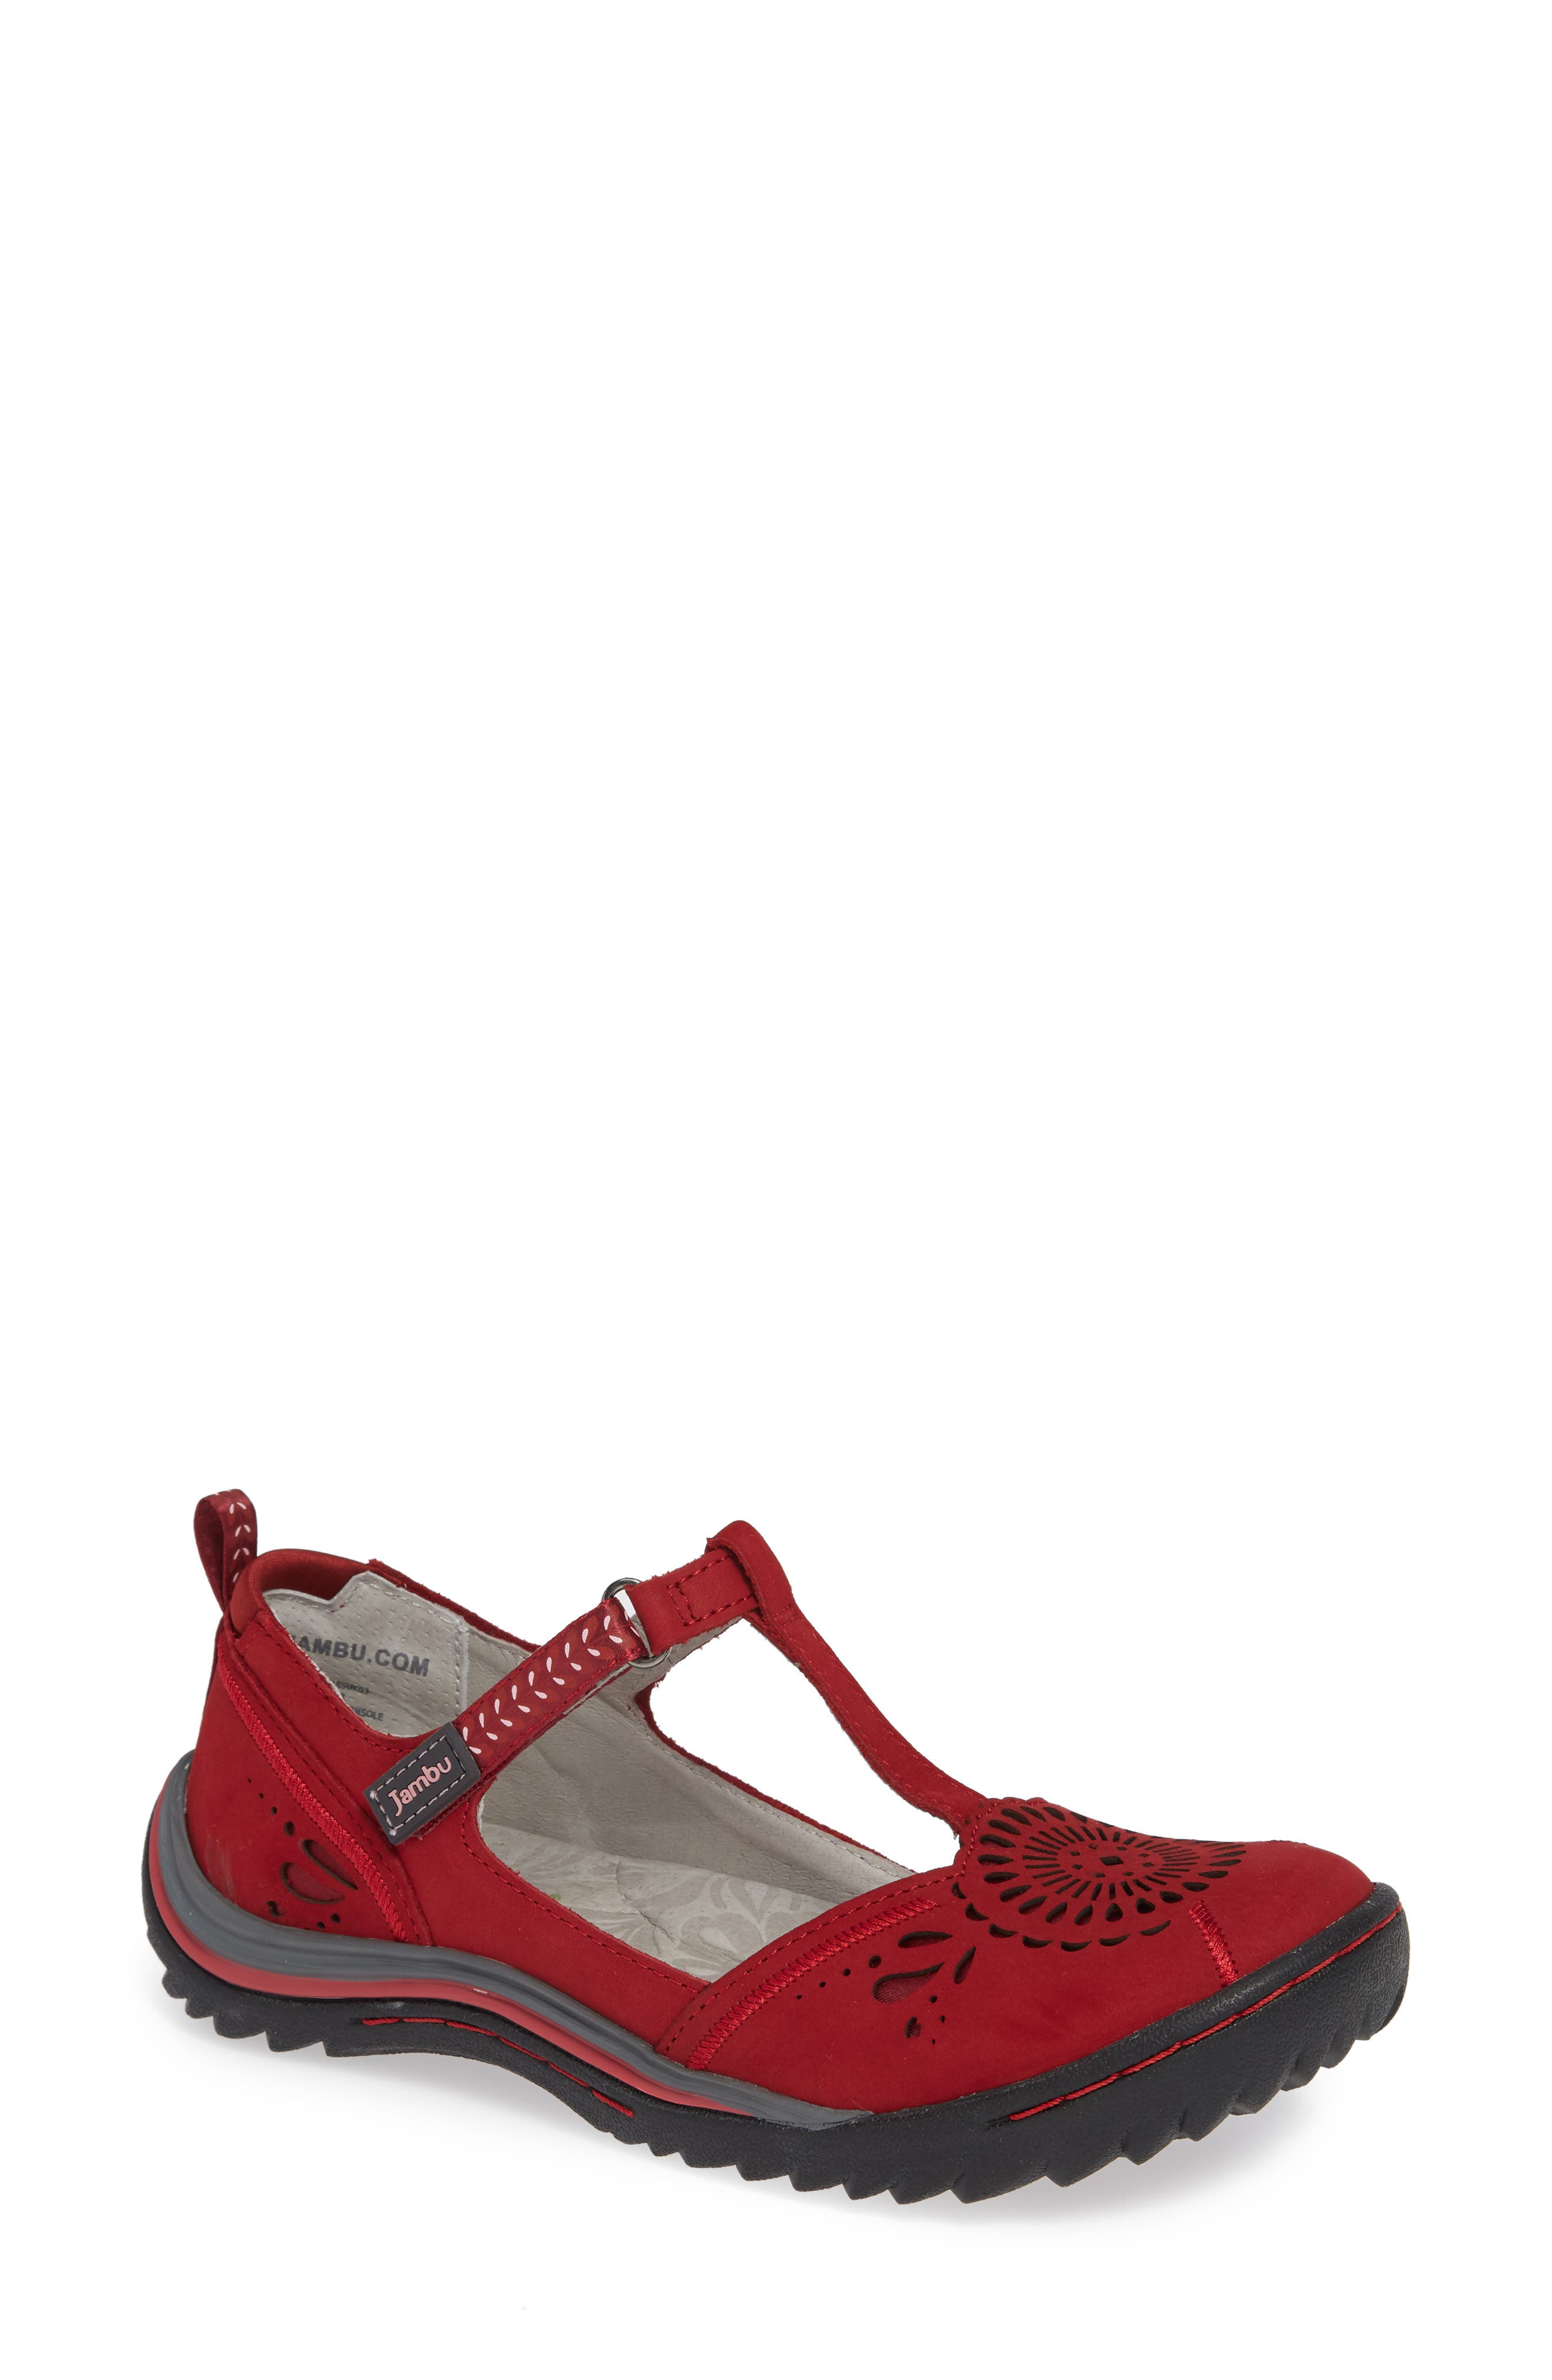 Sunkist Strappy Sneaker,                         Main,                         color, RED/ PETAL NUBUCK LEATHER